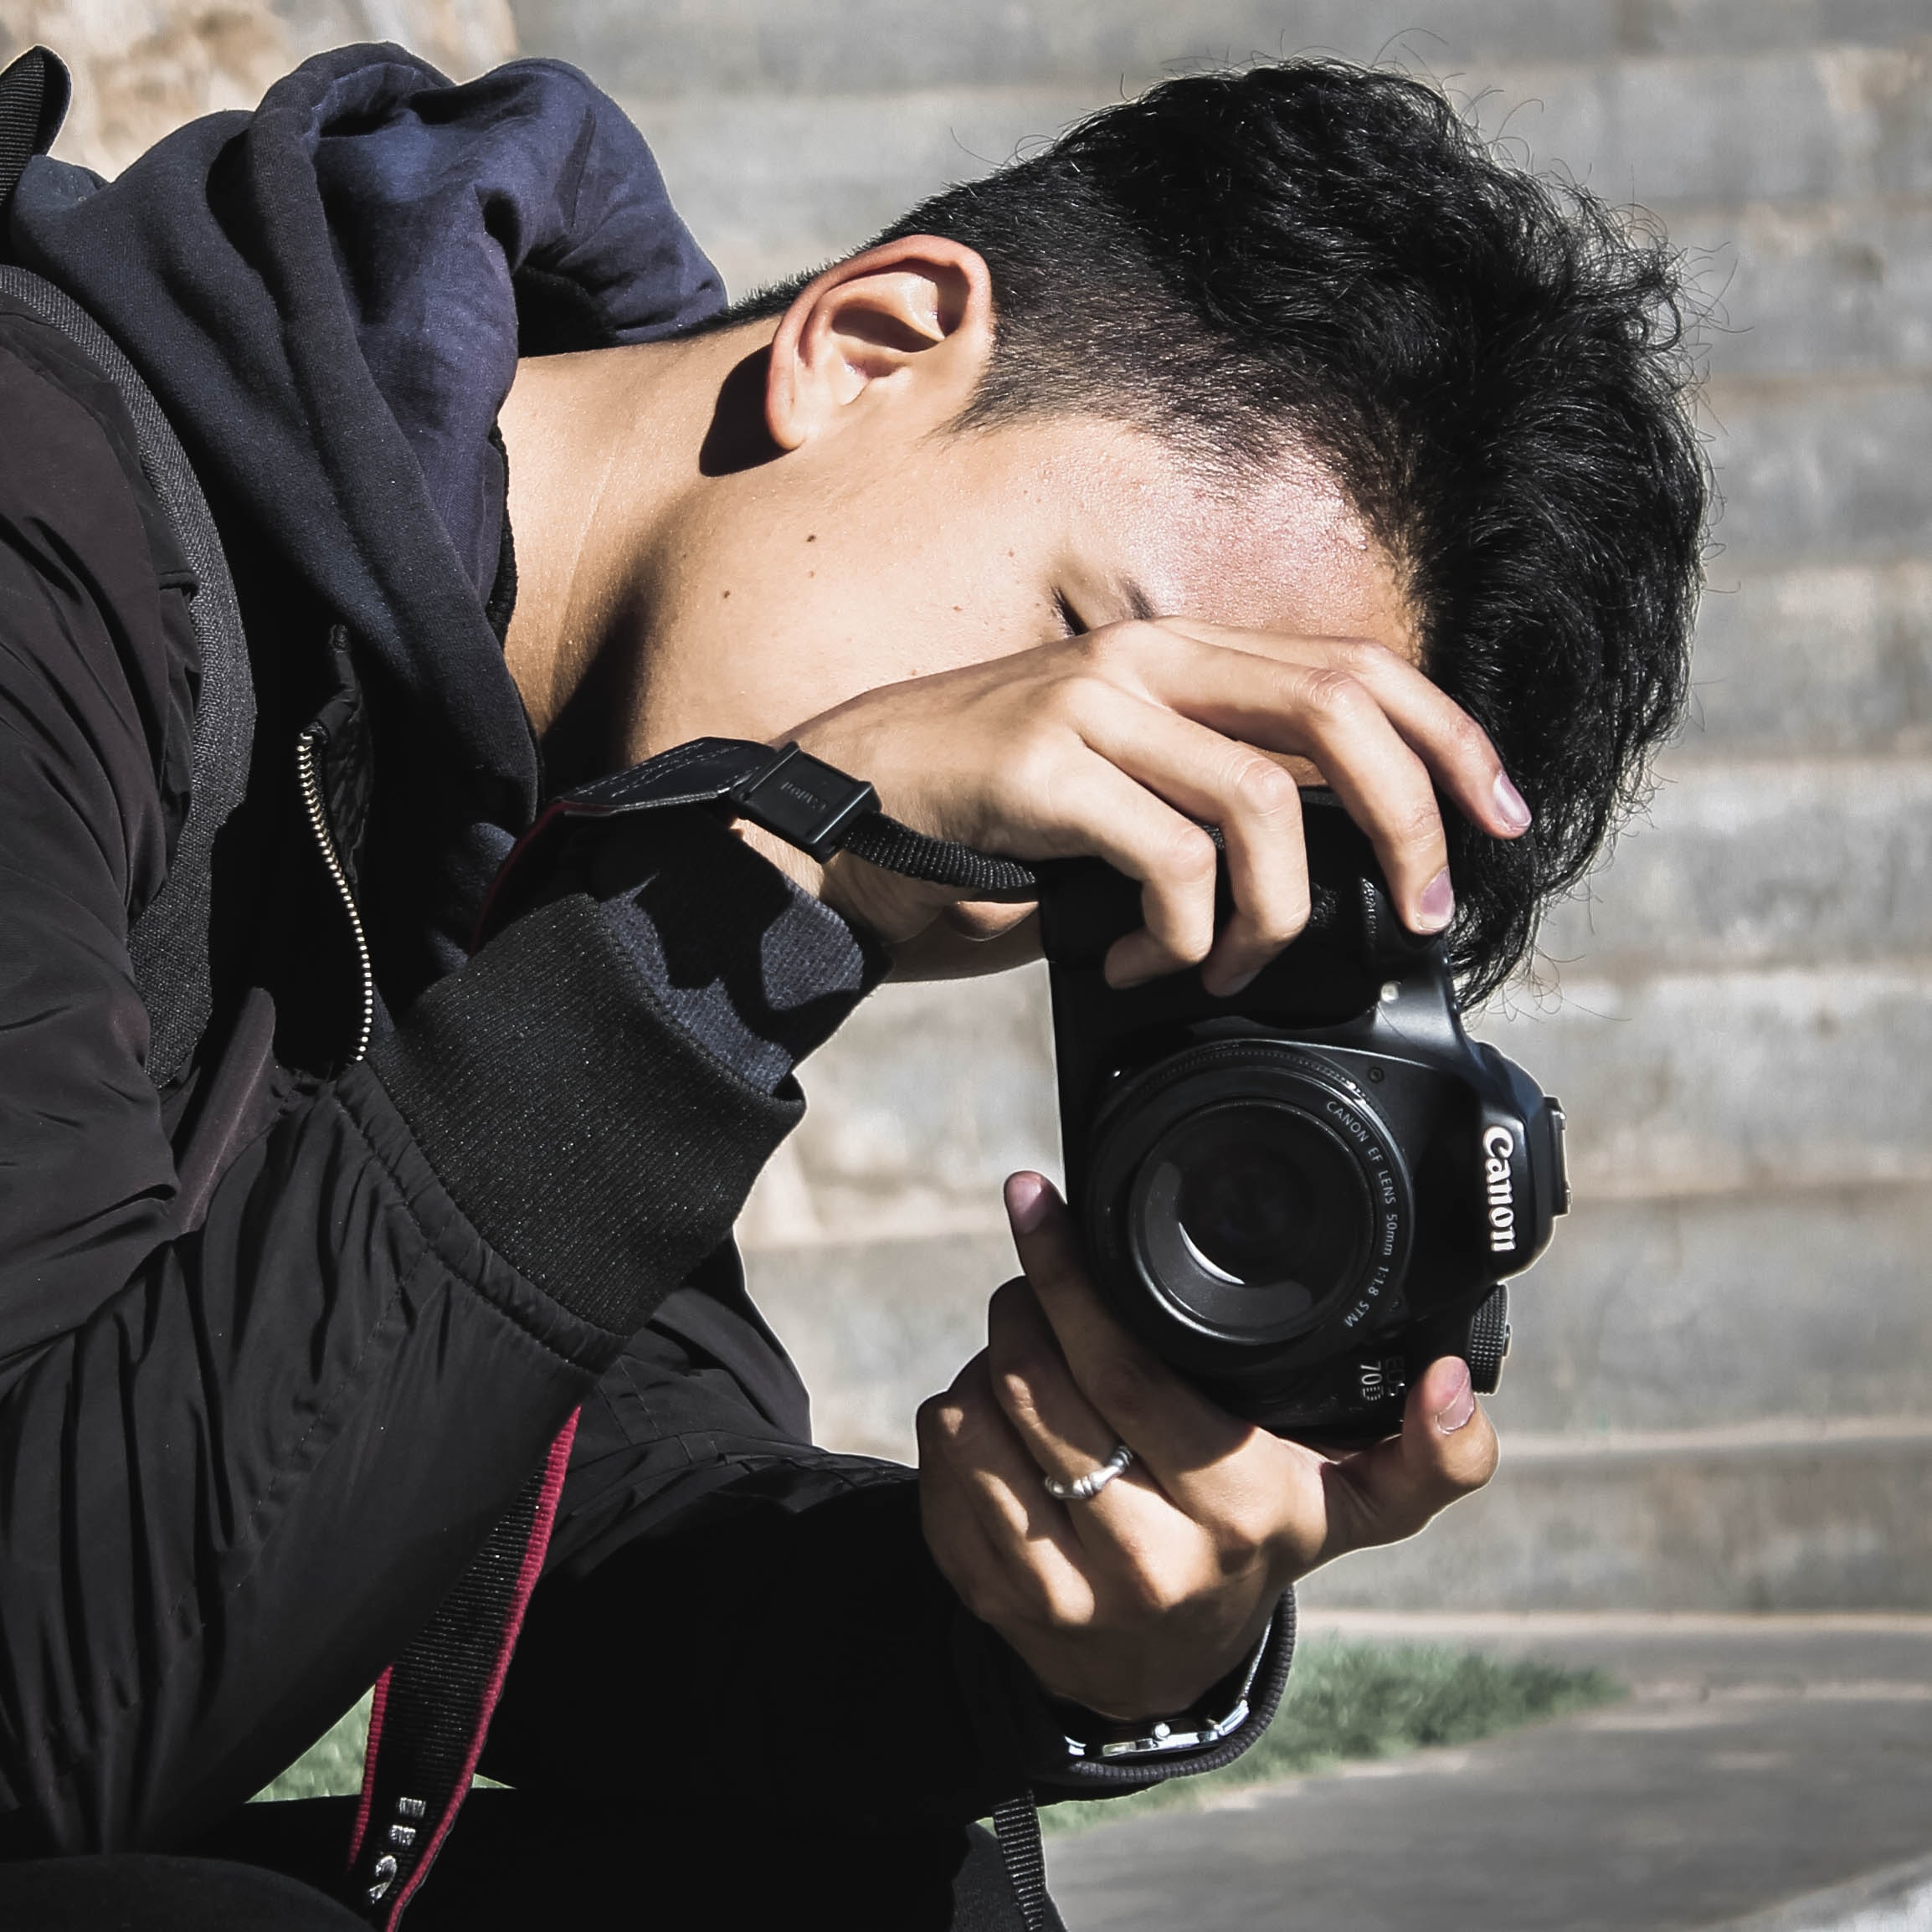 Go to Shashank Thapa's profile